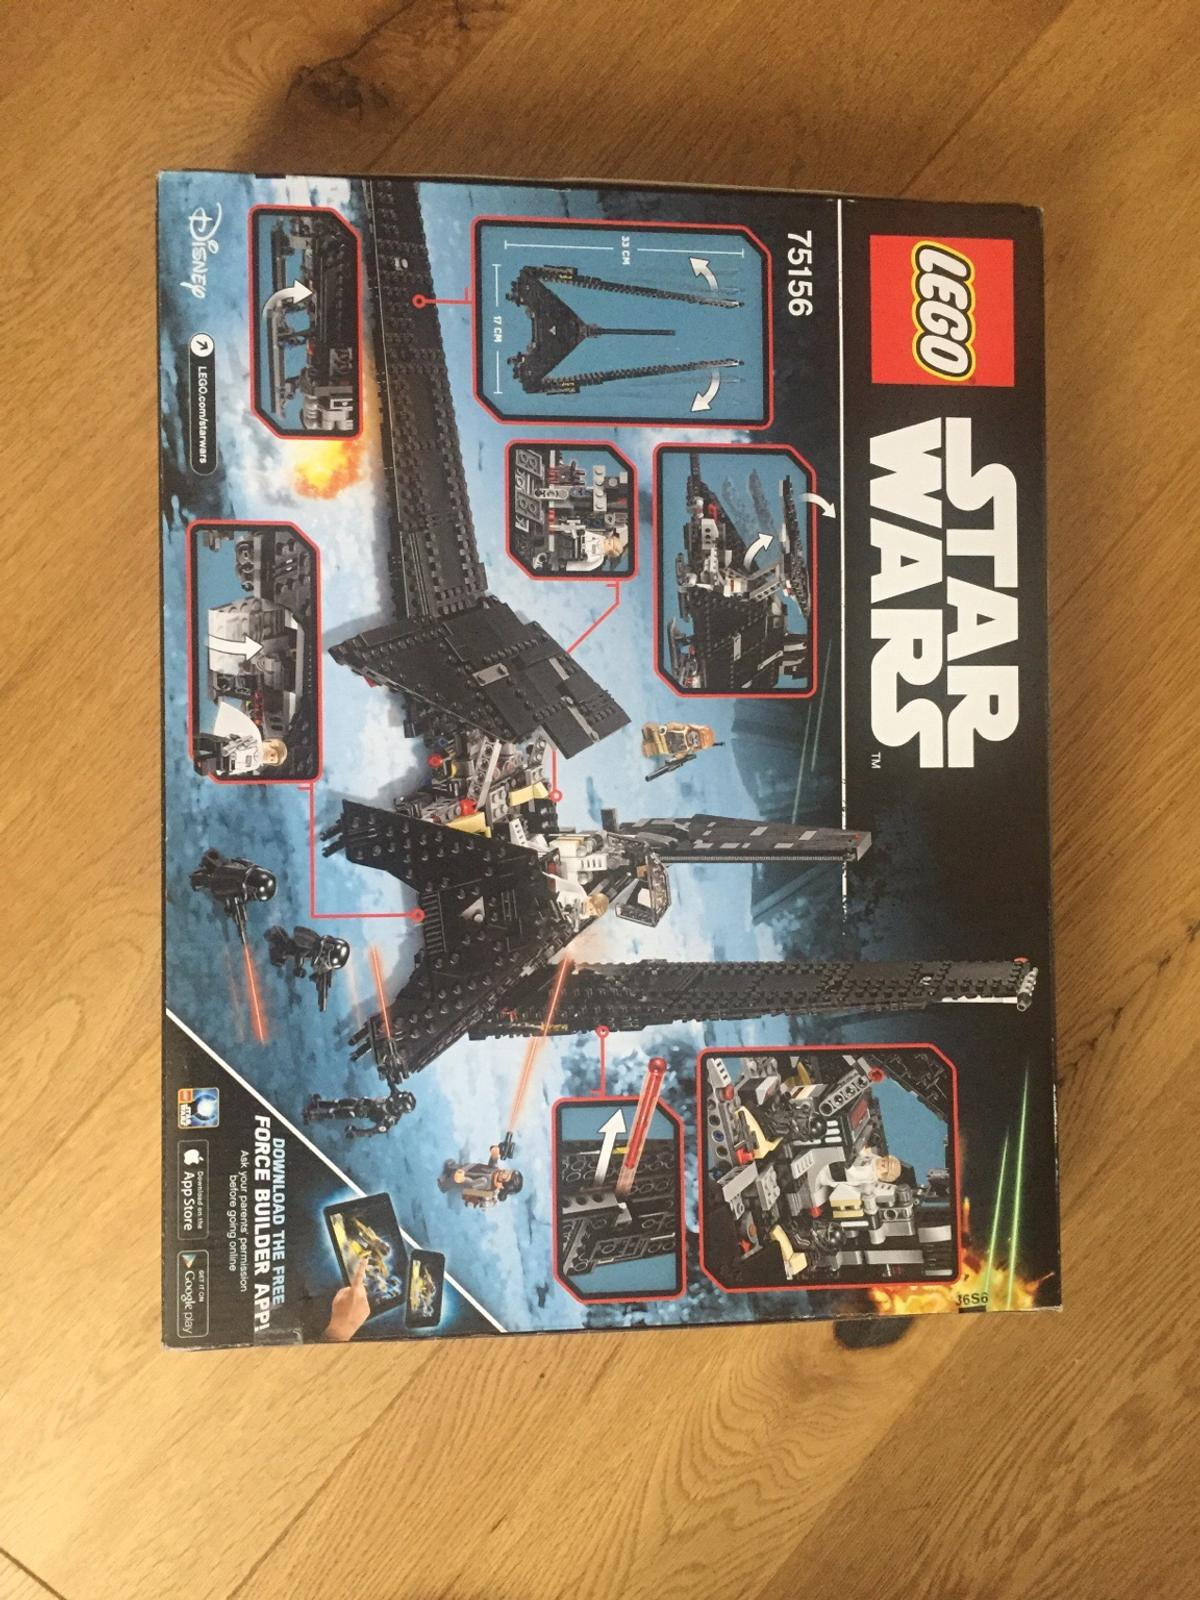 Star Wars Lego Imperial Shuttle New In Cv34 Warwick For 5500 For